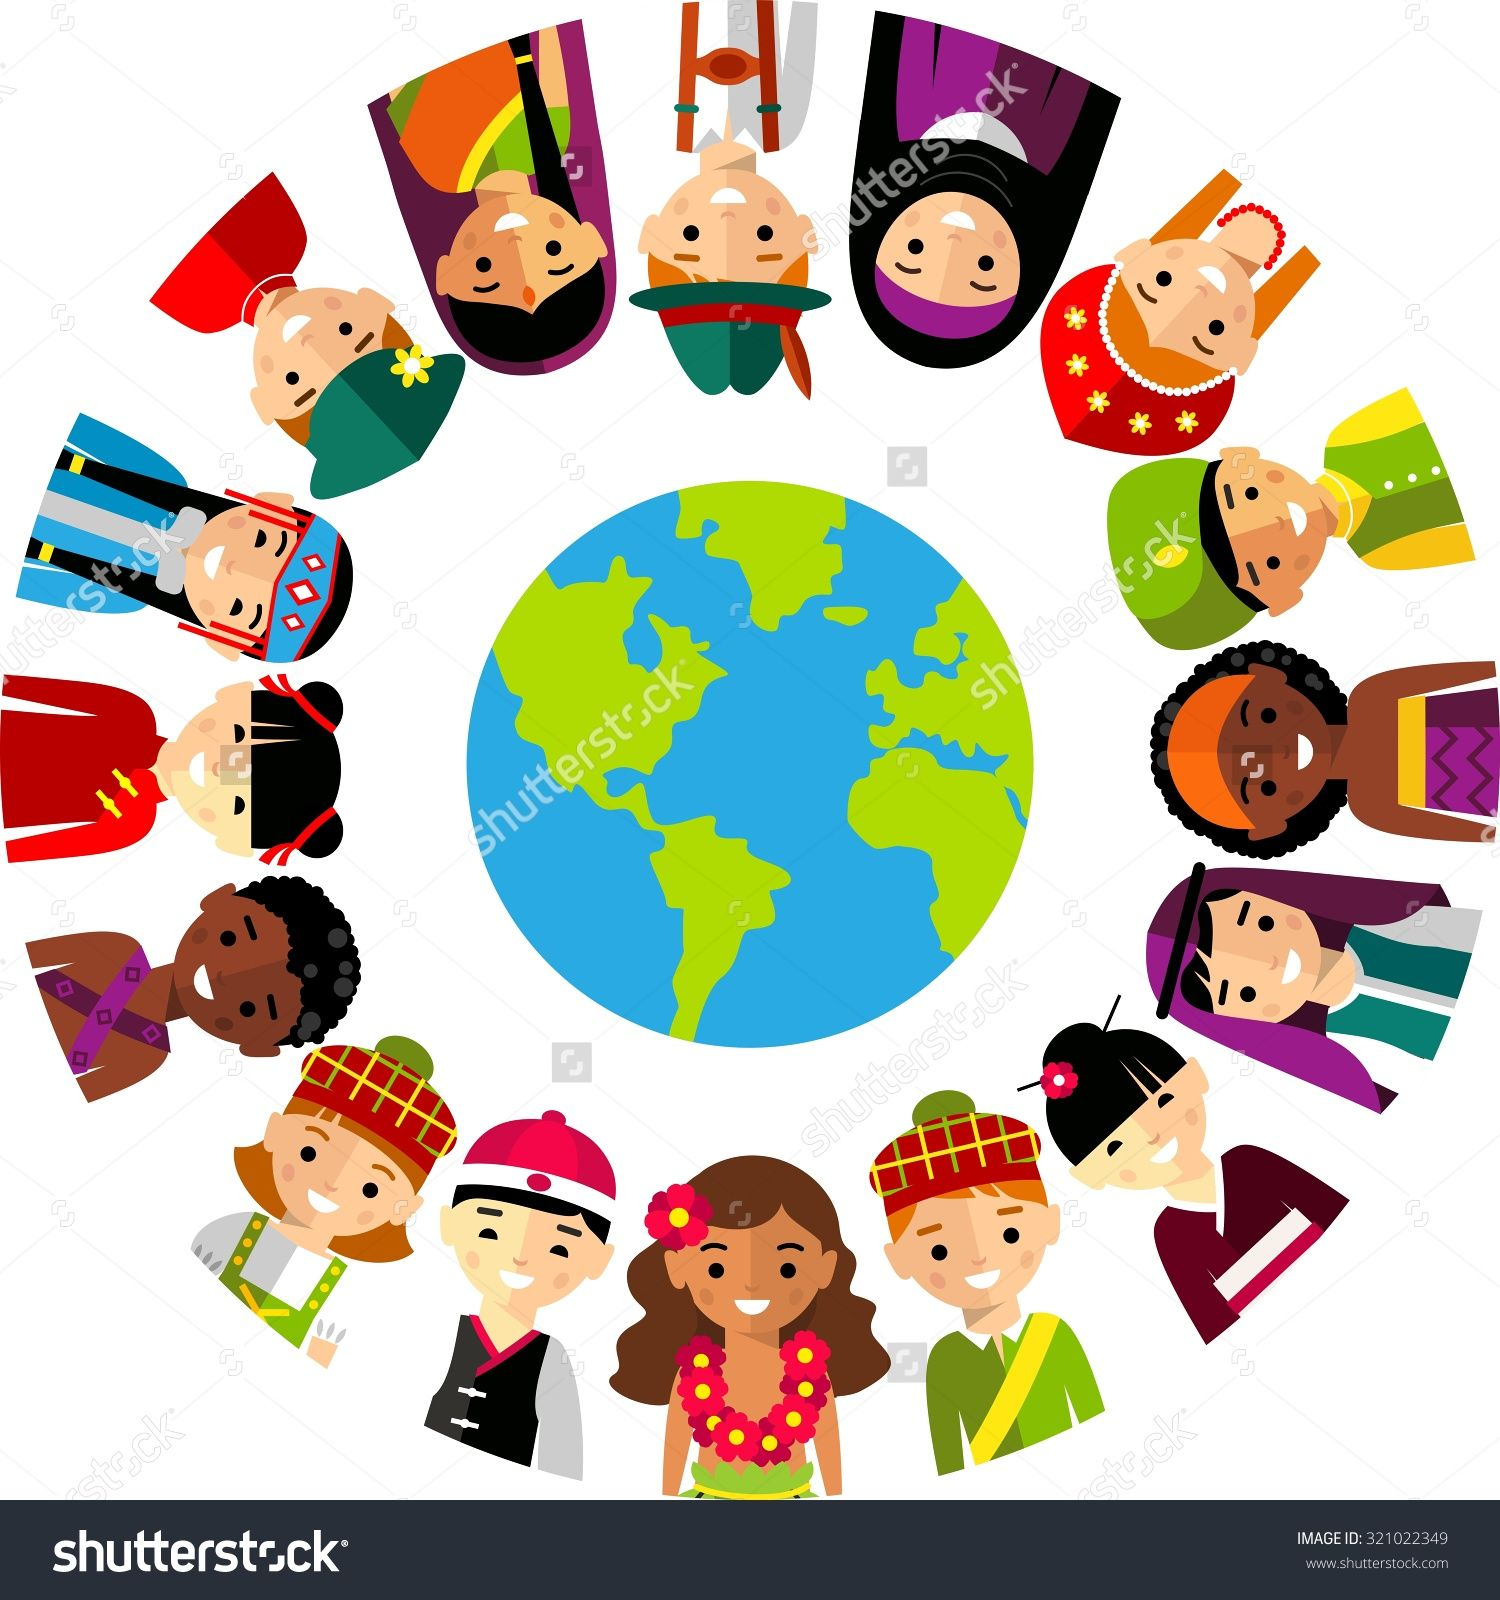 Child Images Clip Page 2 Multicultural Friendship by Clipart.